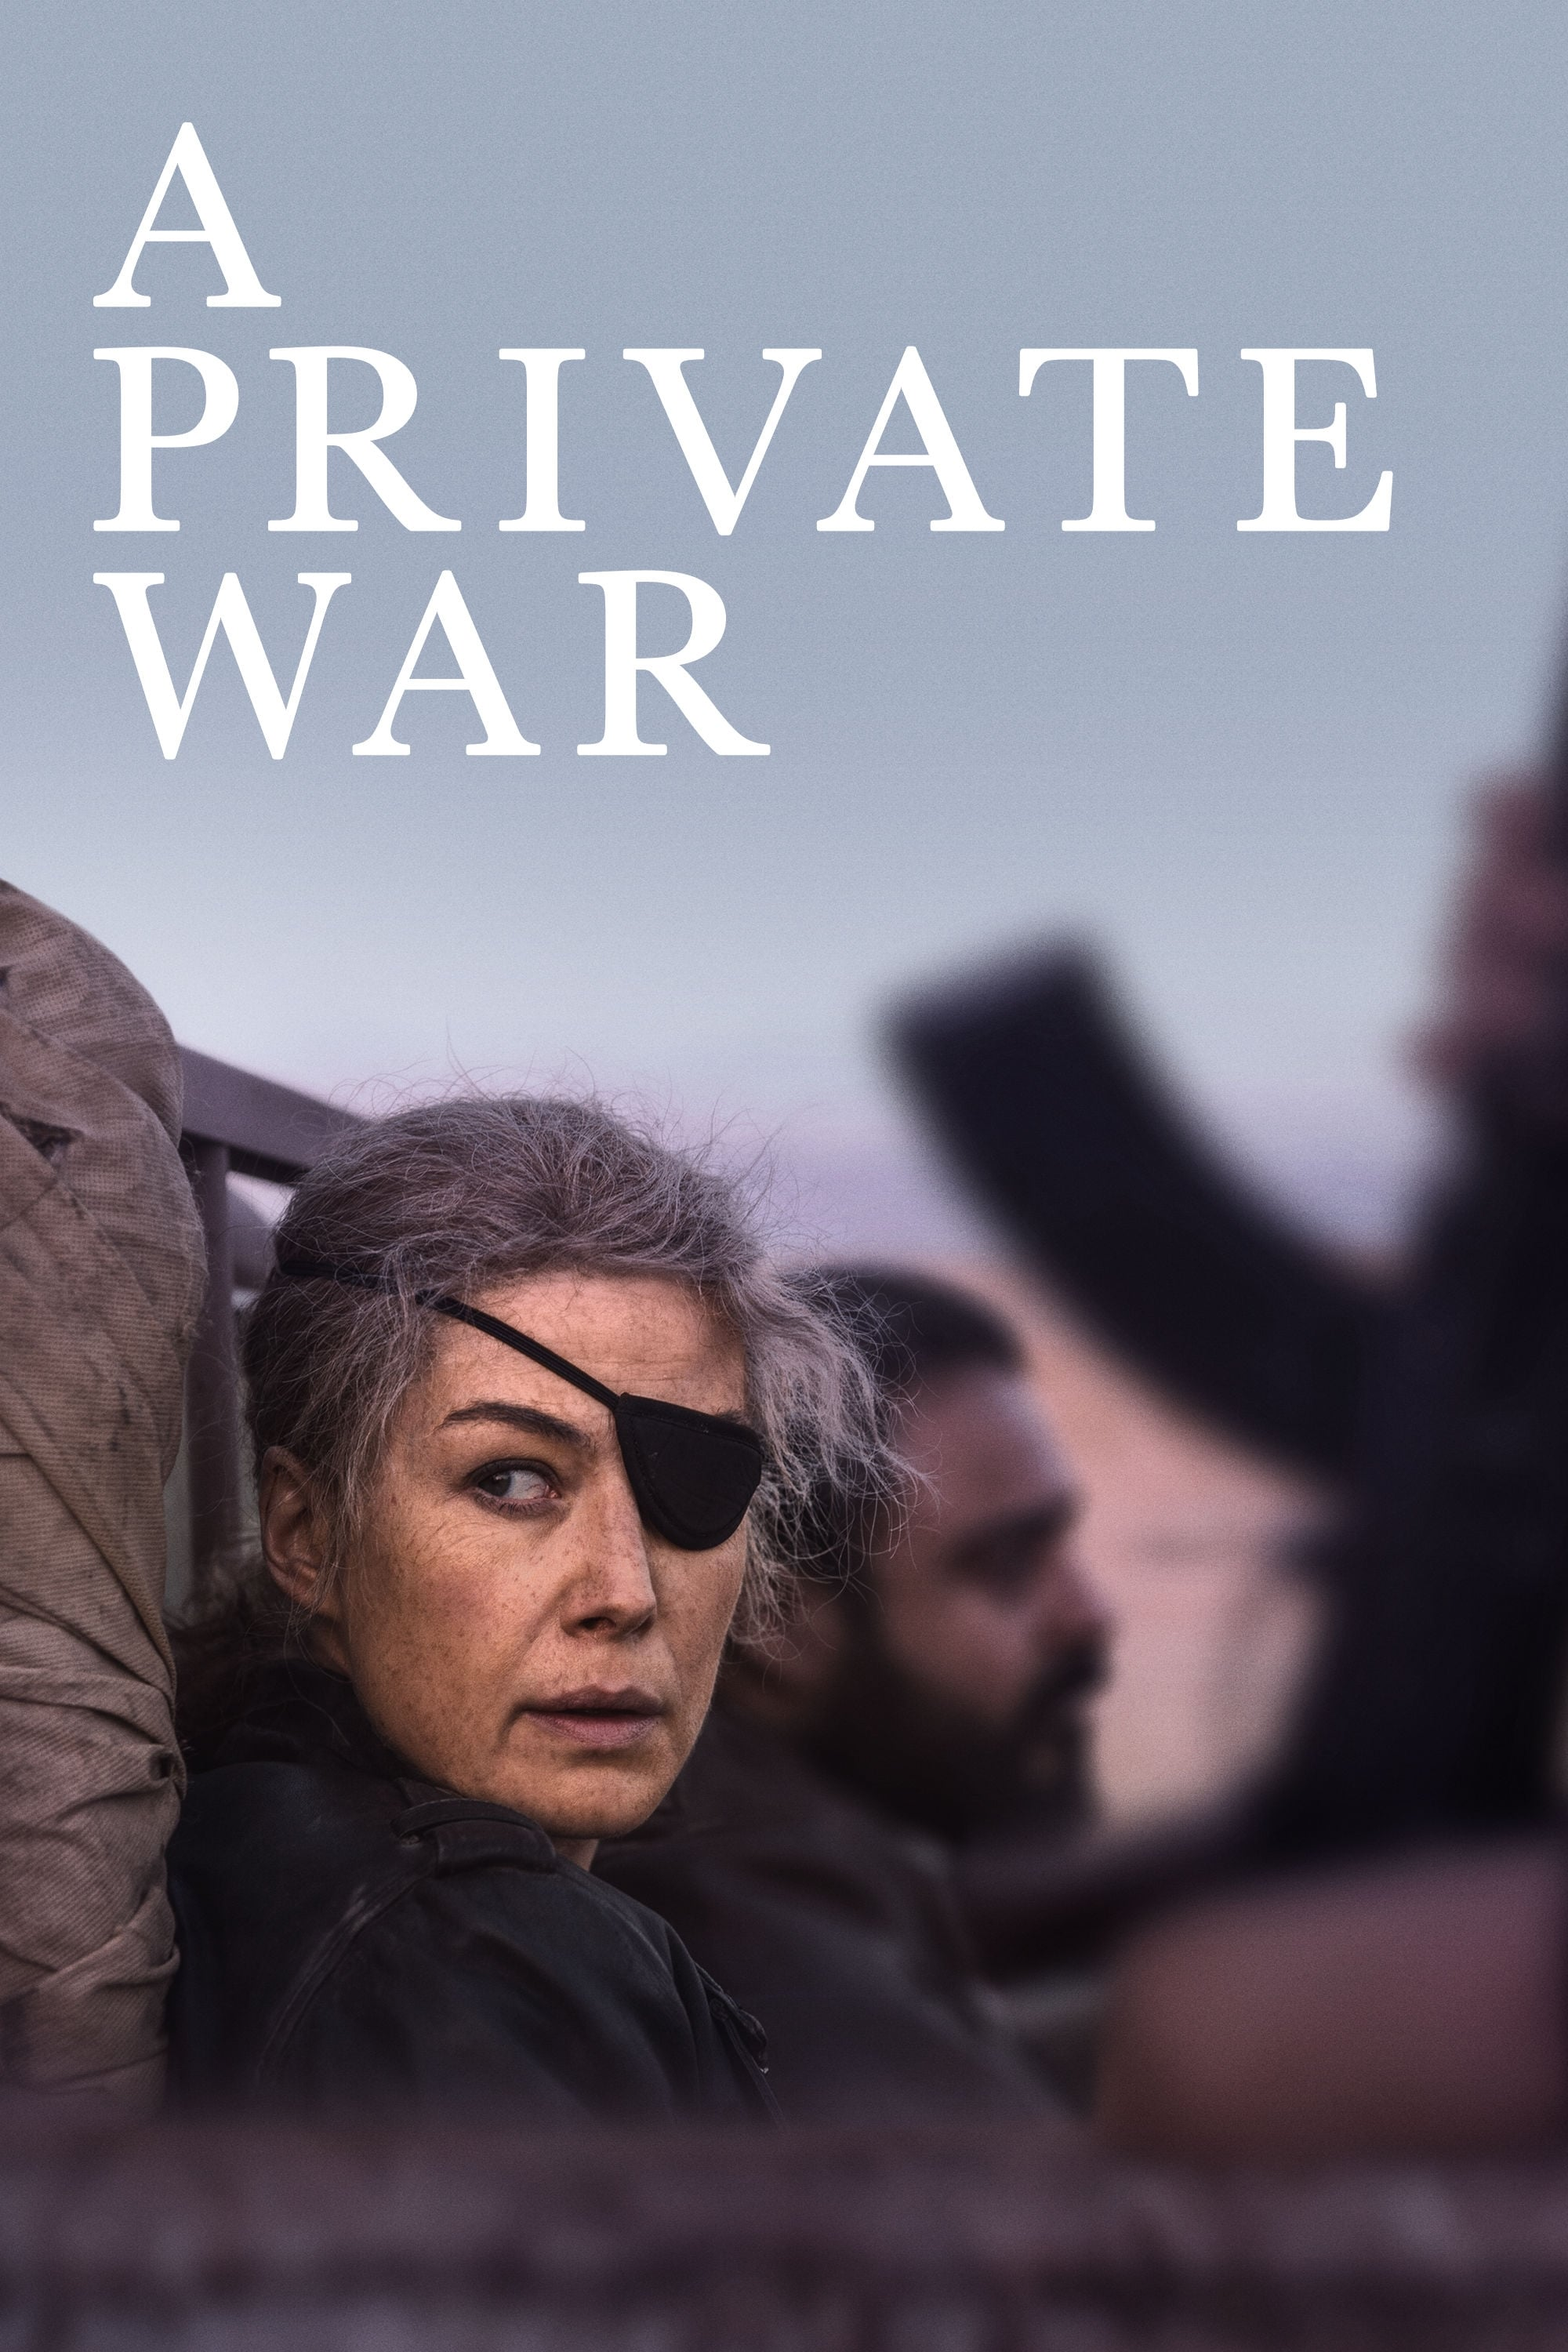 Image A Private War